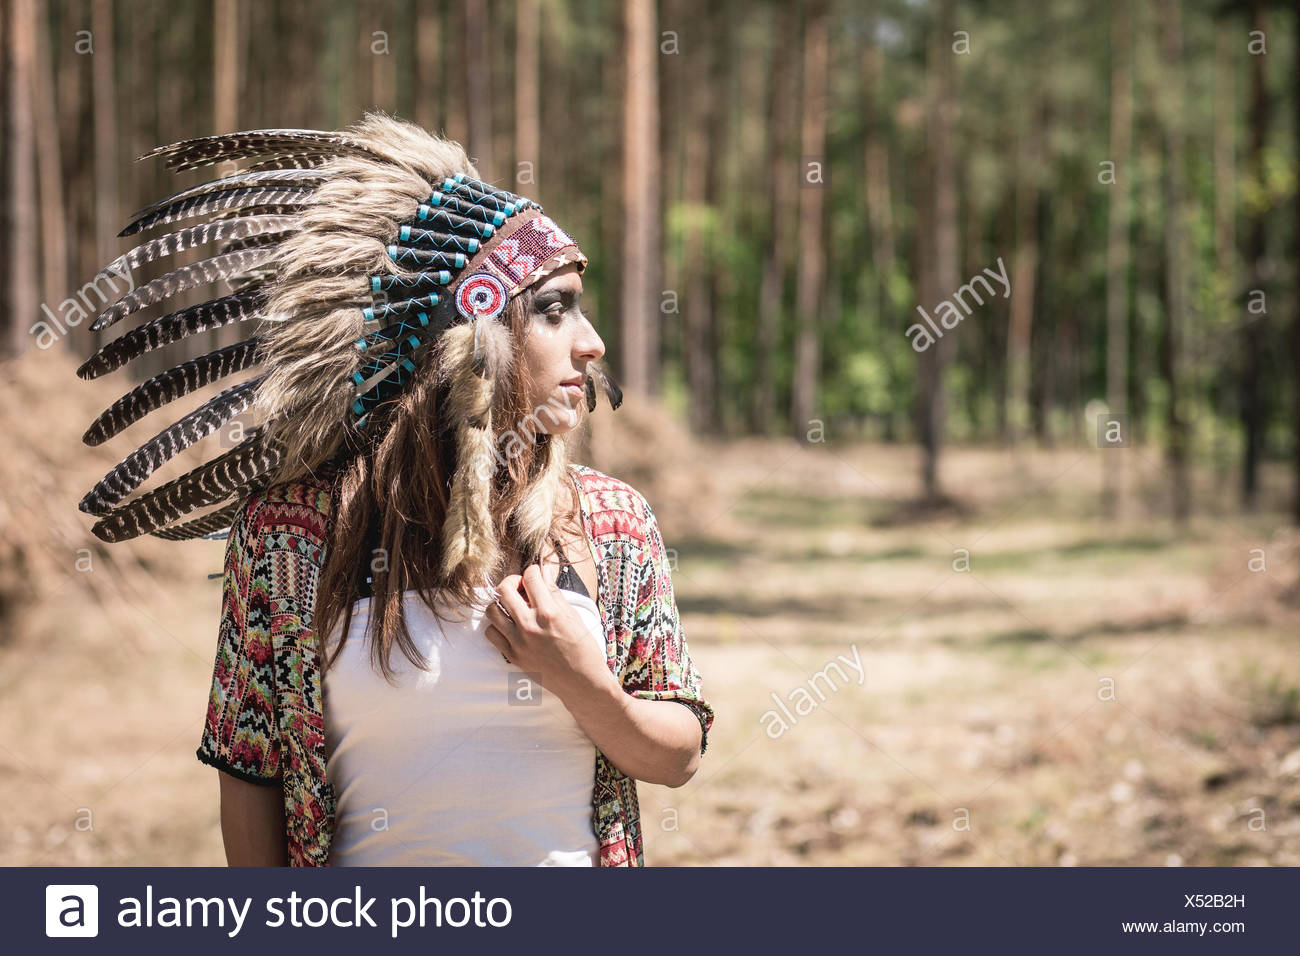 Young woman masquerade as an Indian in the woods - Stock Image